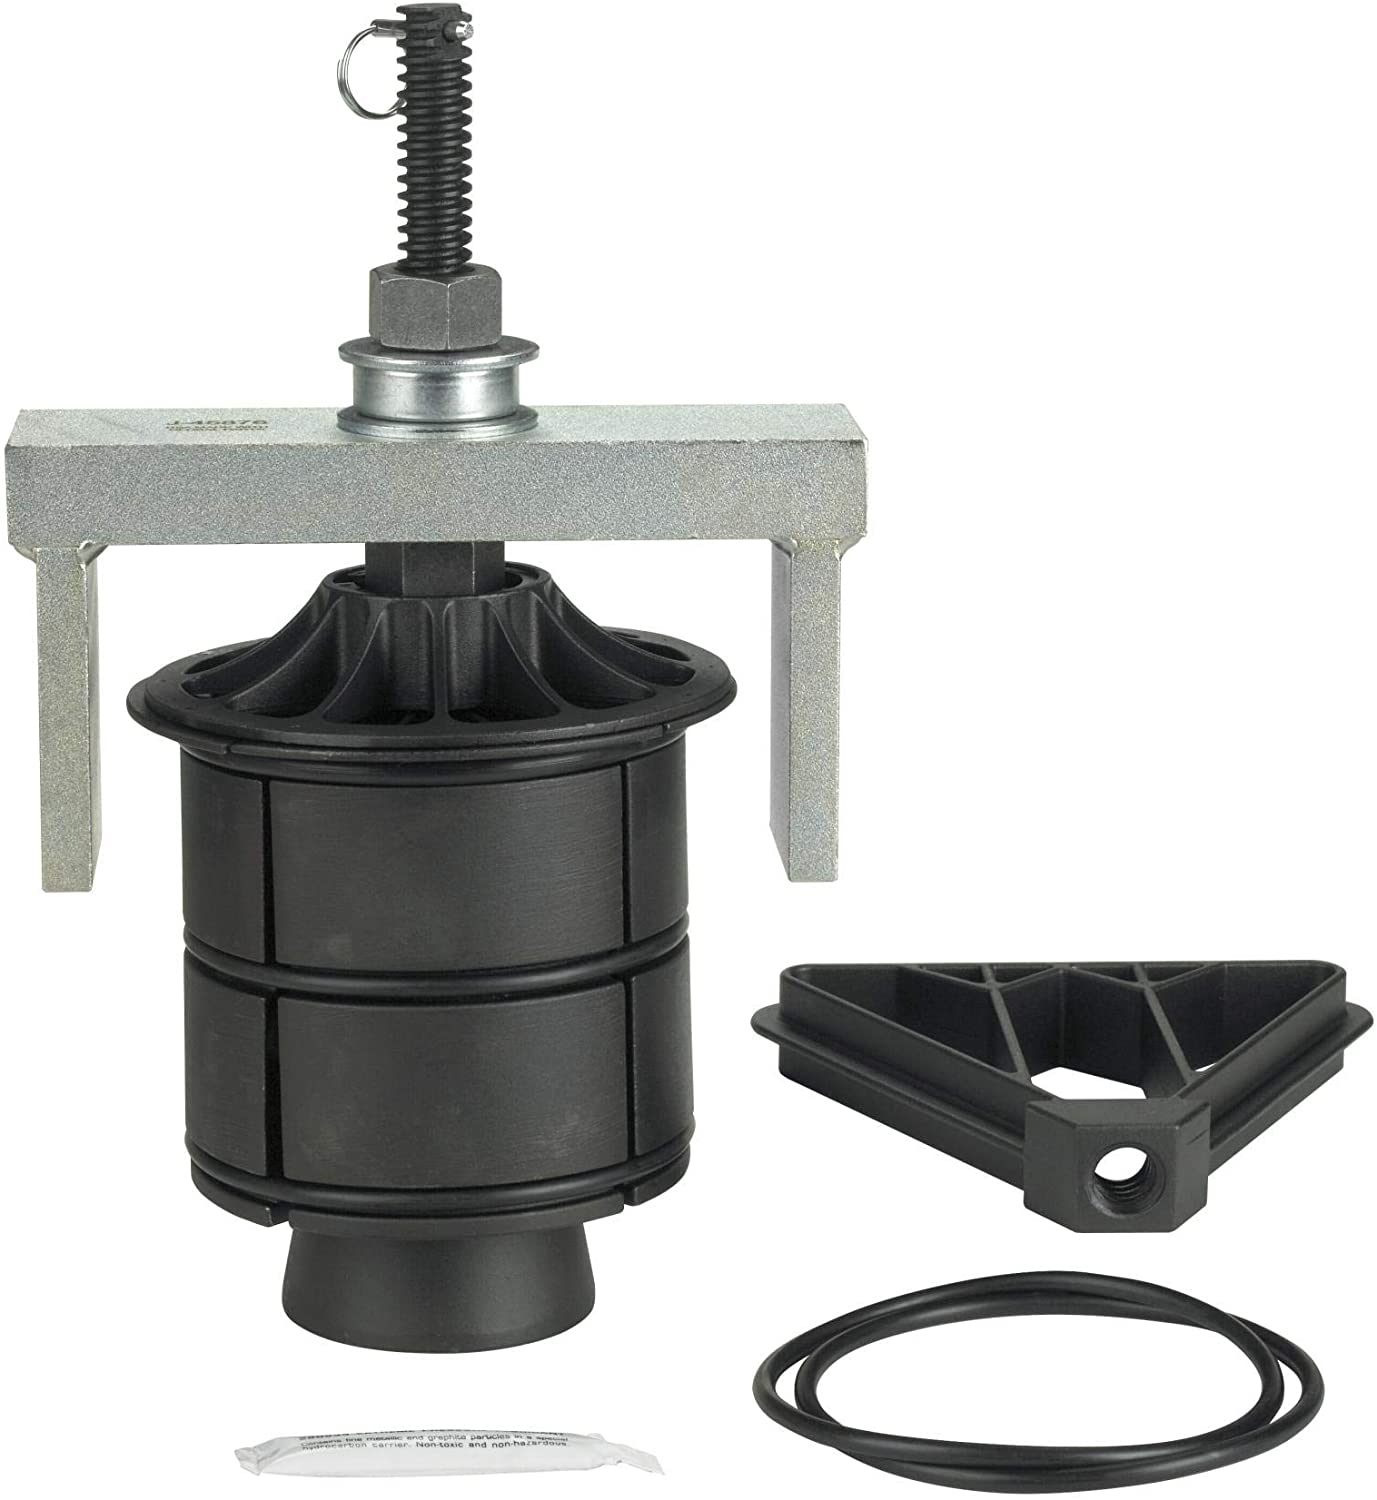 OTC 5875 Cylinder Liner Remover for Select Detroit Diesel 60 Series and MTU S2000 Heavy Duty Engines